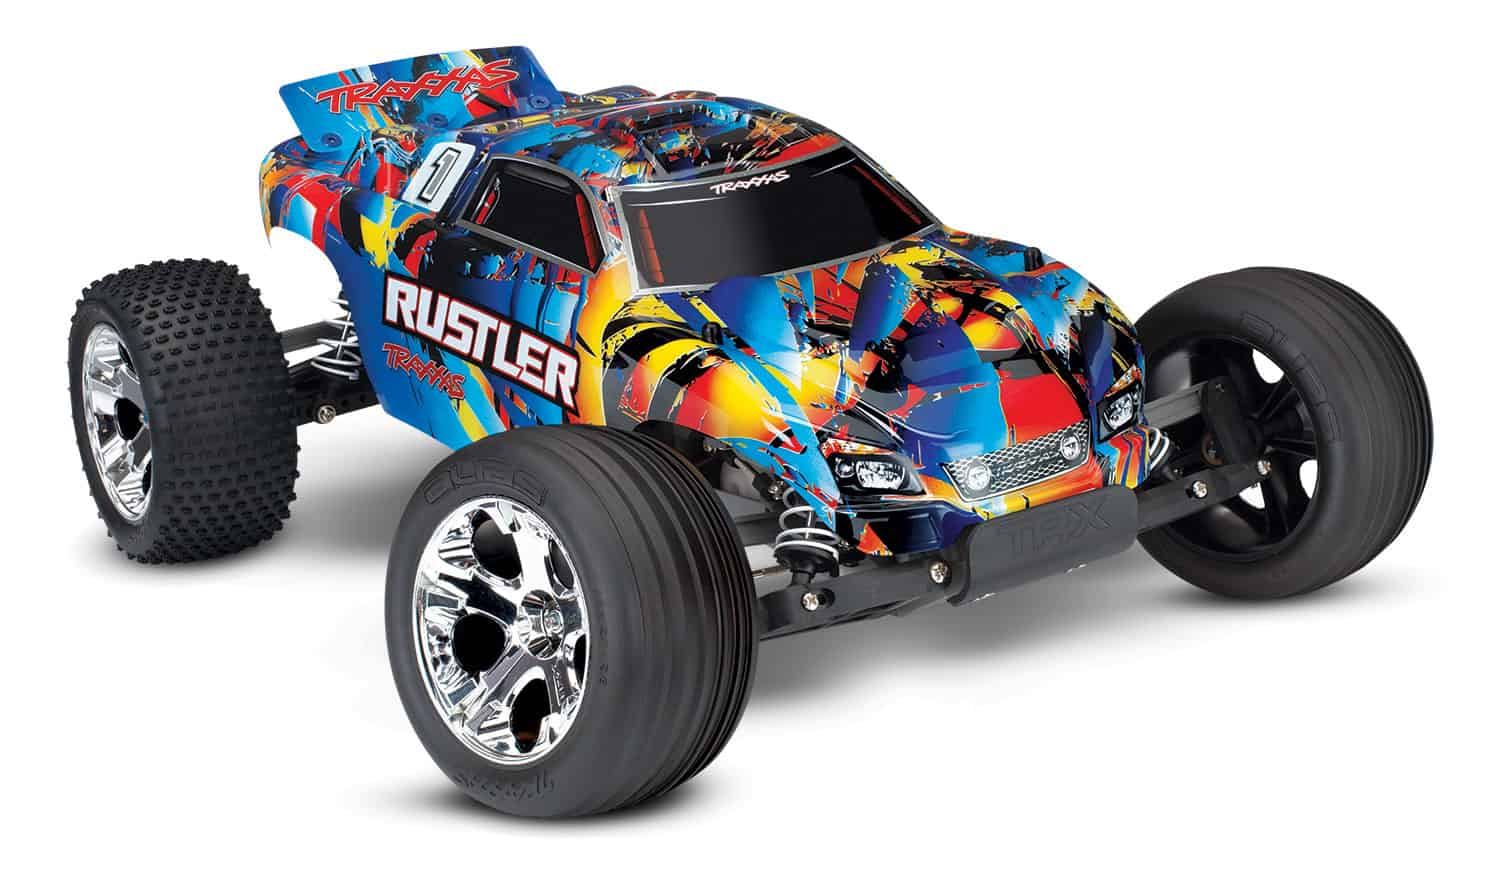 Traxxas Rustler - New Look and Lower Price